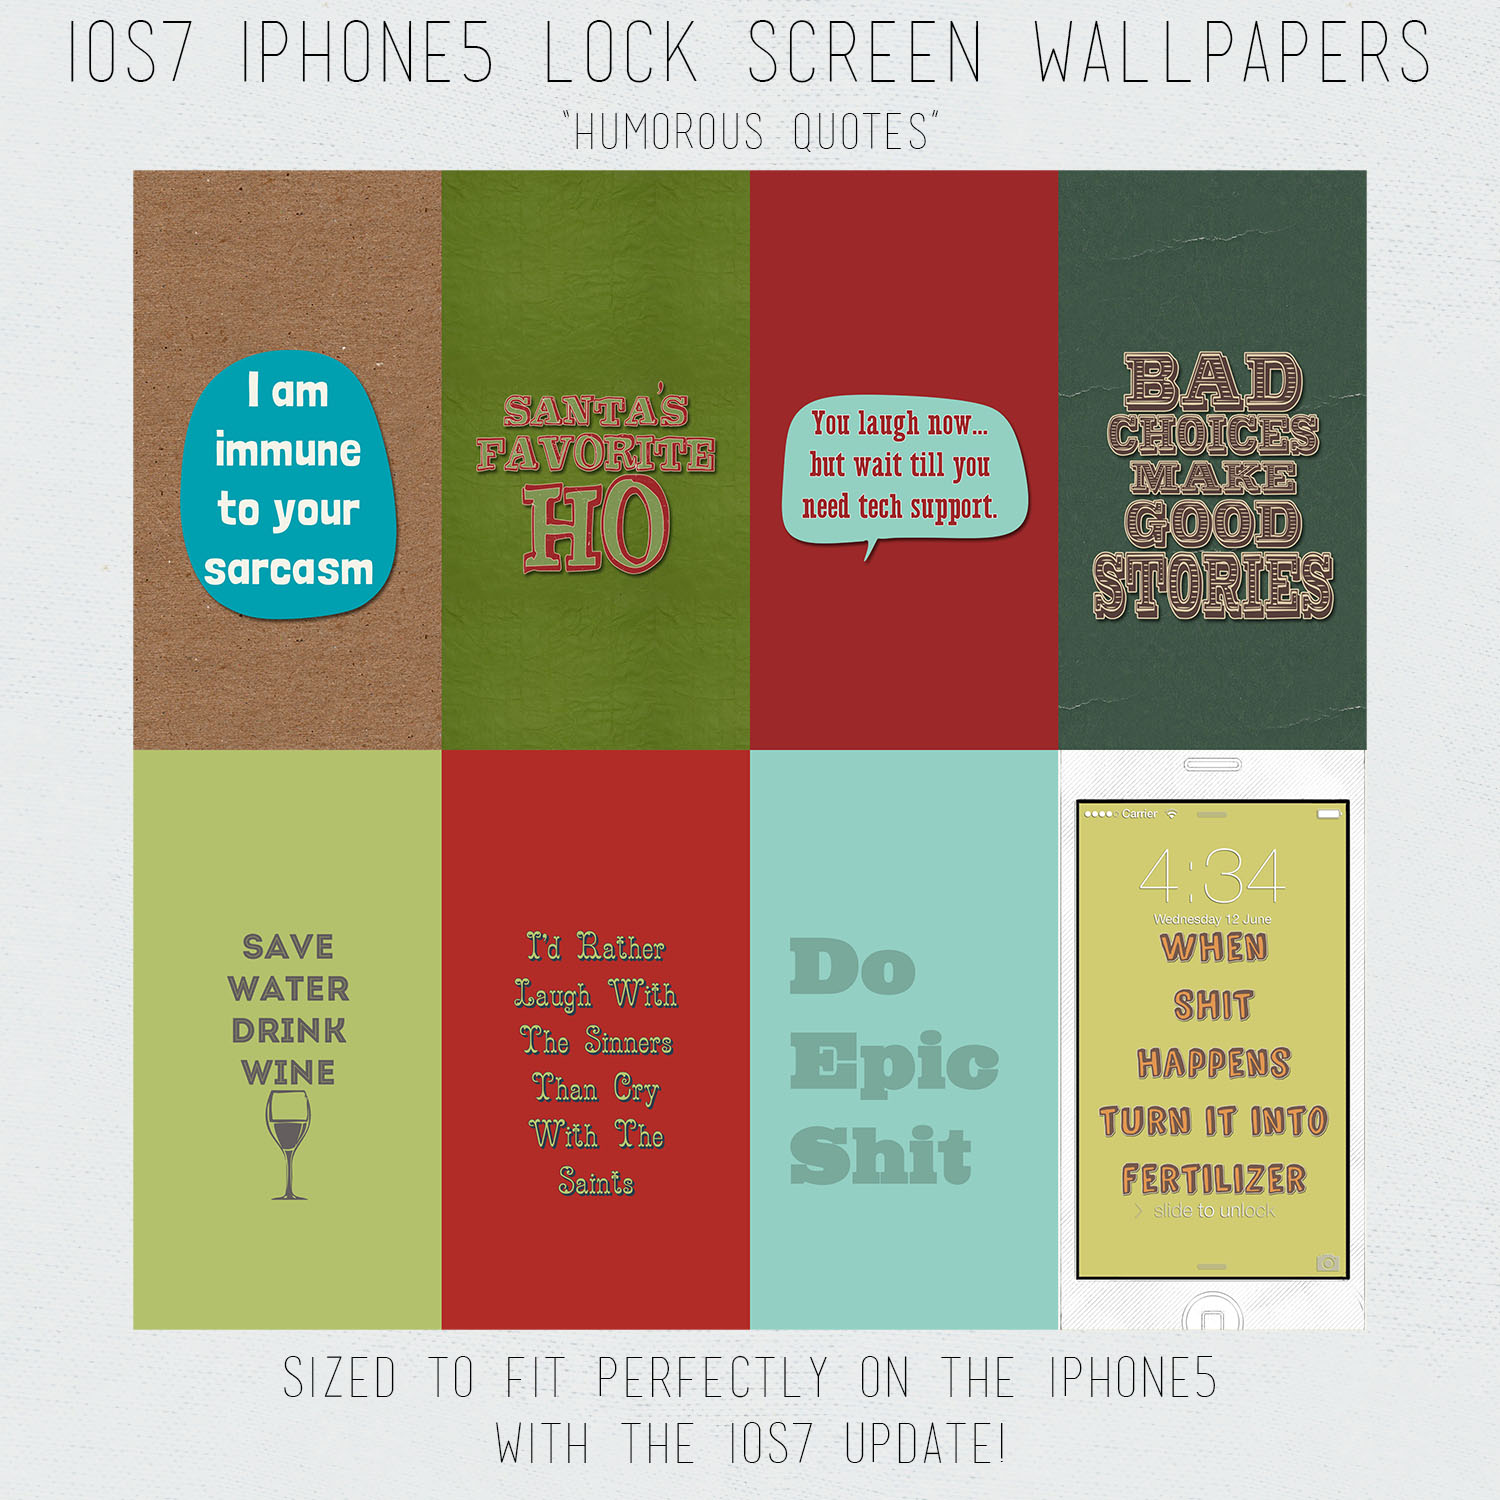 ios7 iphone 5 lock screen wallpaper quotes by